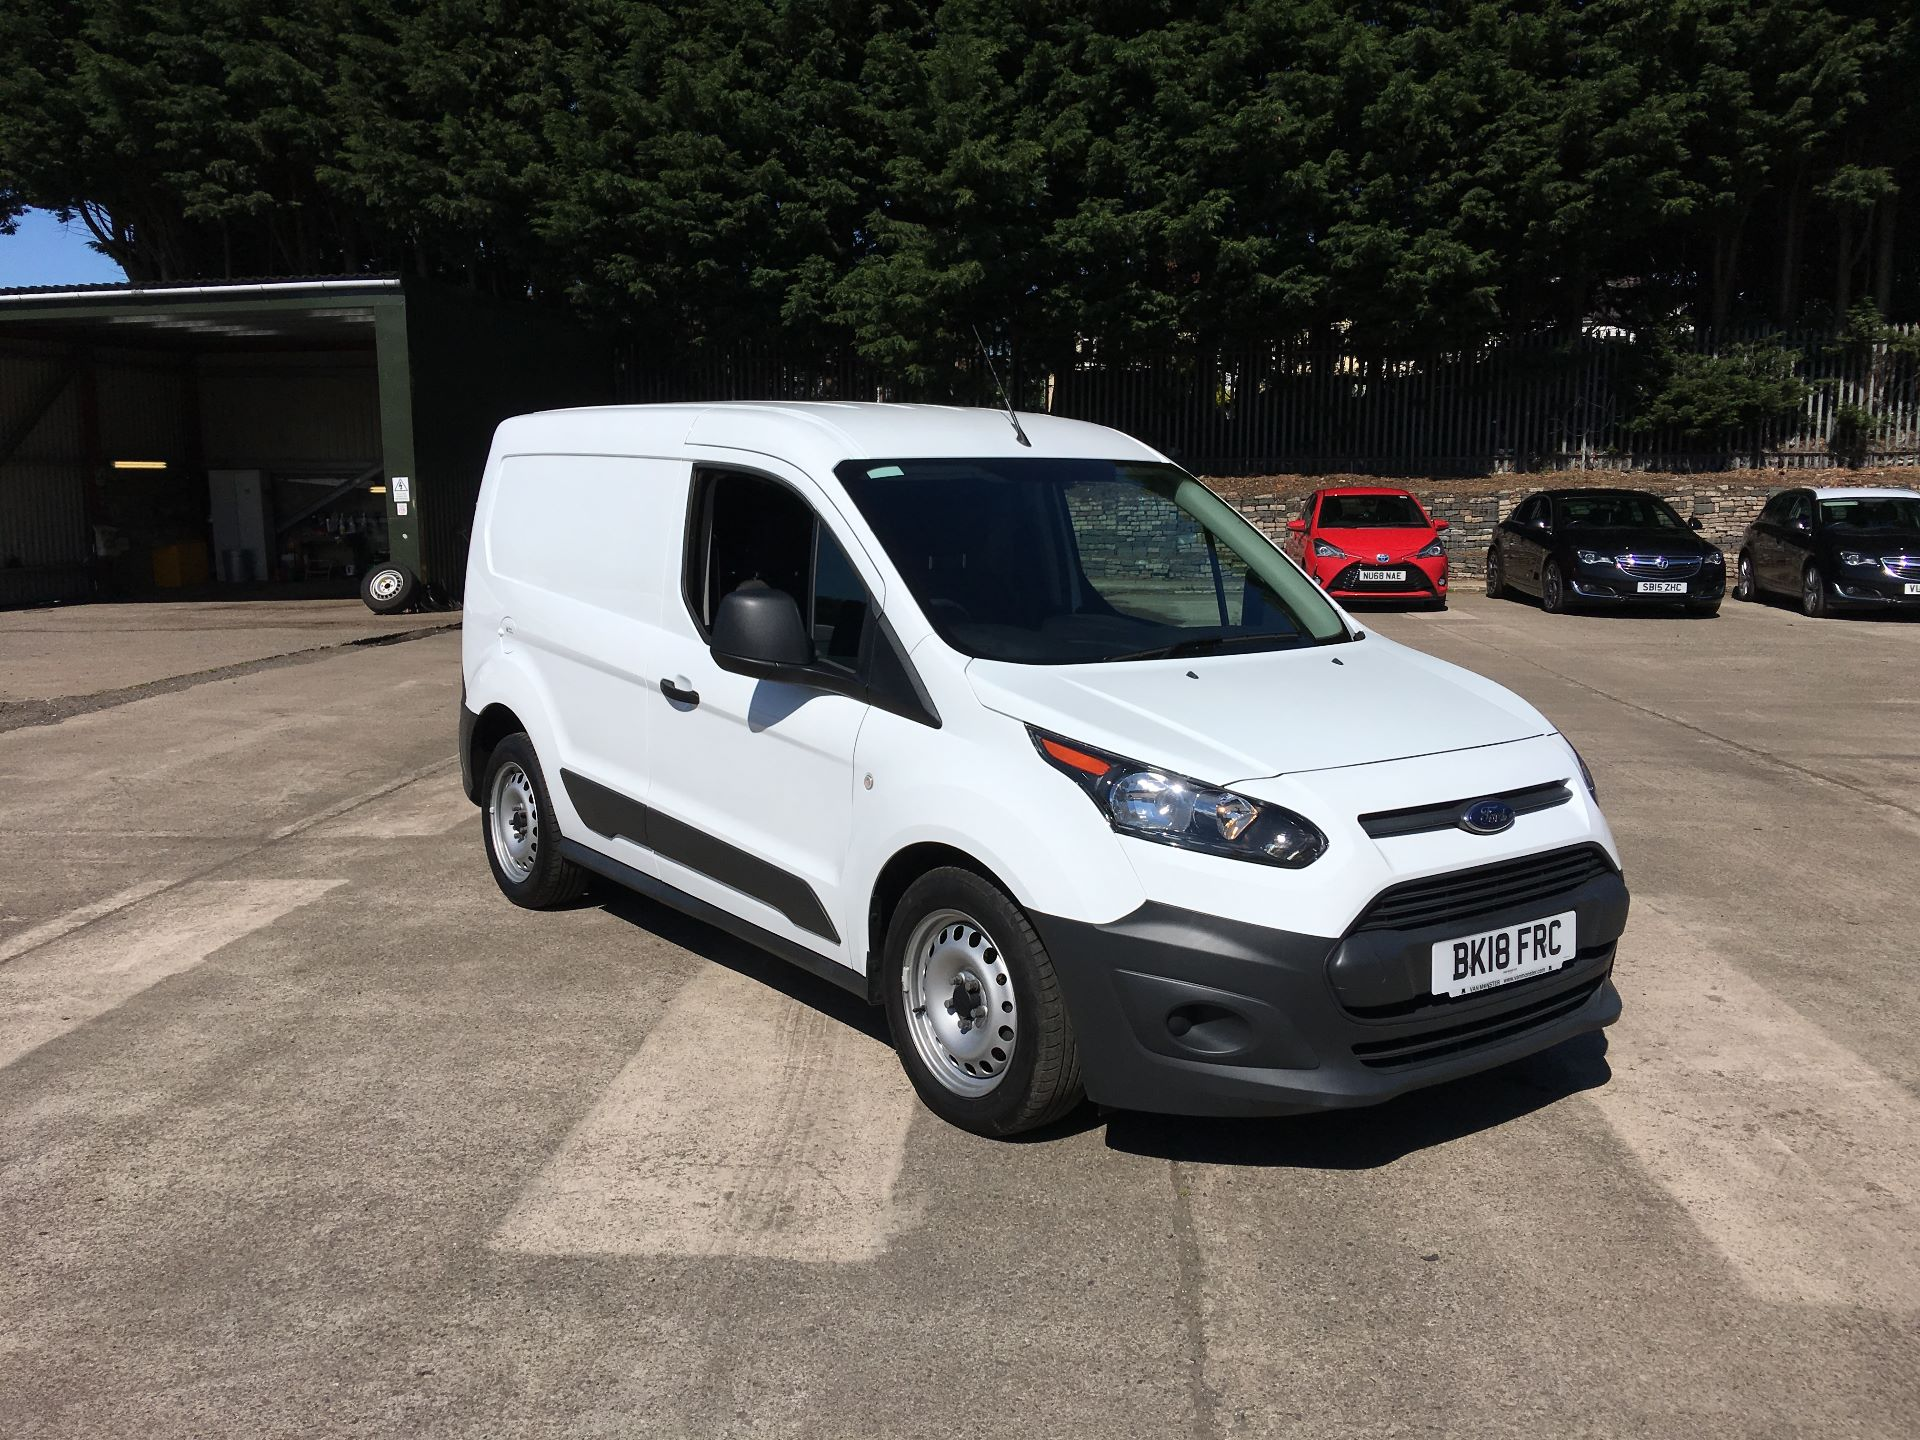 2018 Ford Transit Connect 200 L1 DIESEL 1.5 TDCI 75PS VAN EURO 6 (BK18FRC)